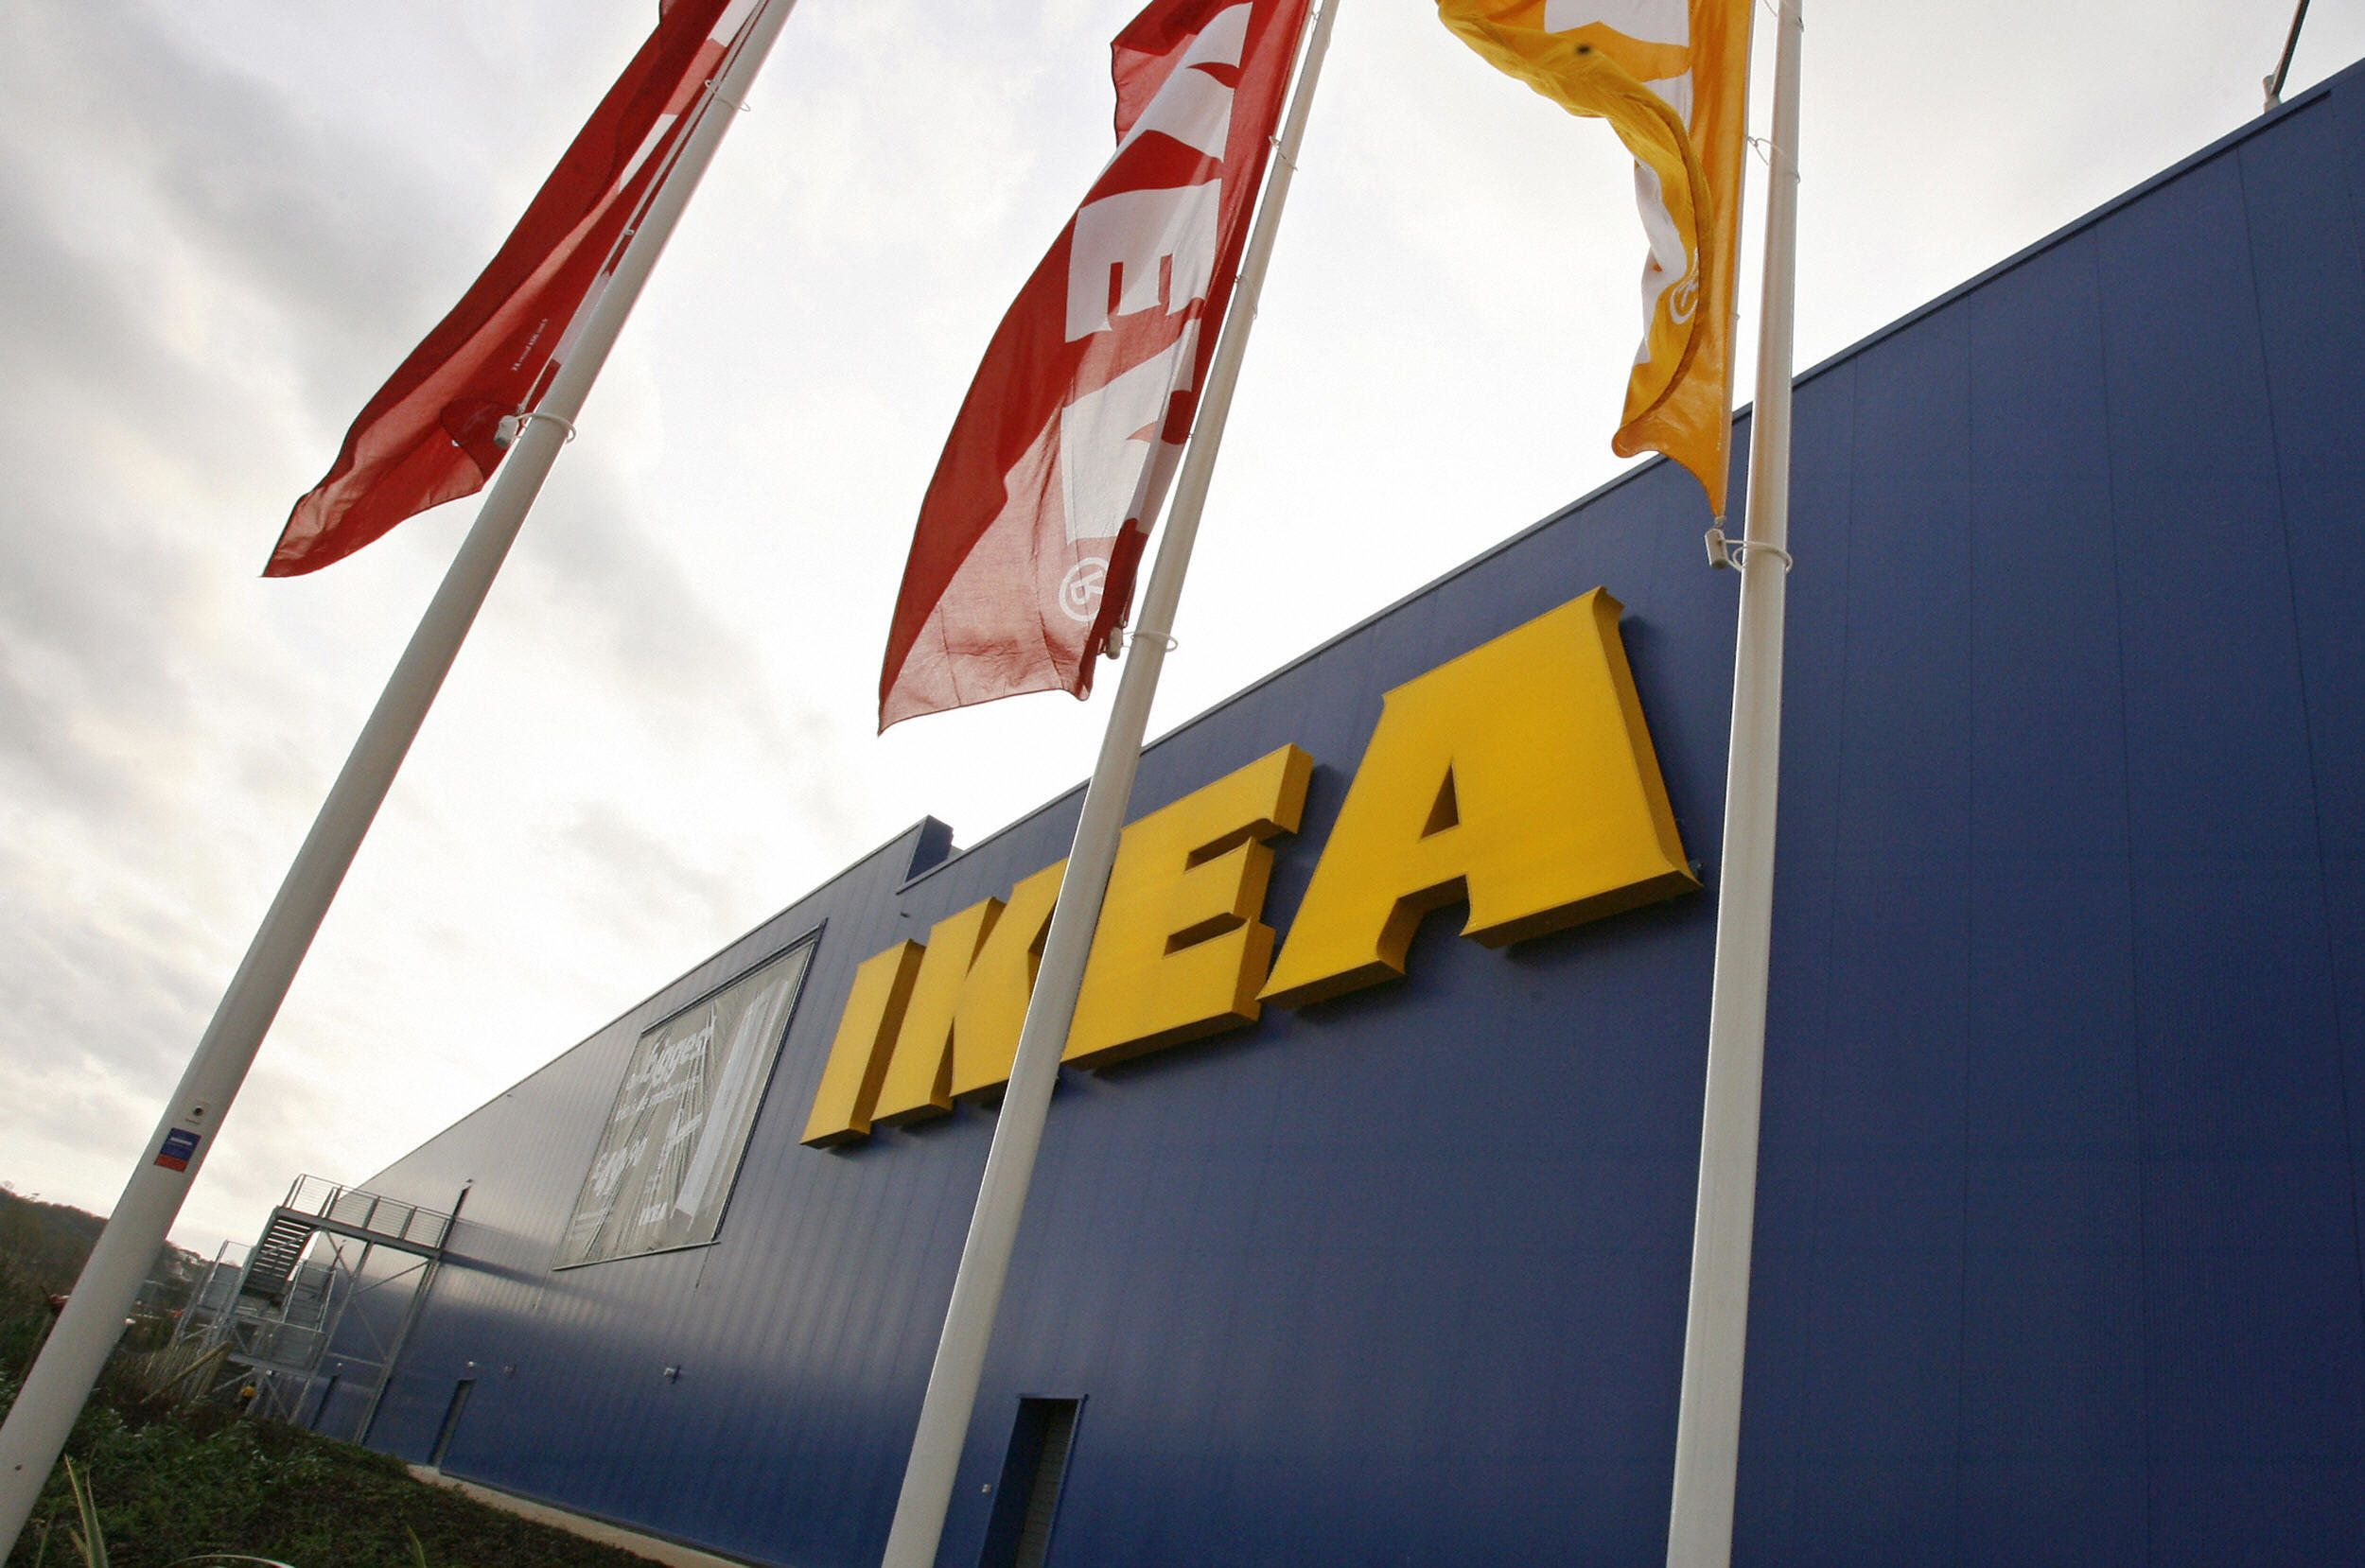 Ikea Has Some Very Surprising Uses For Its Recycled